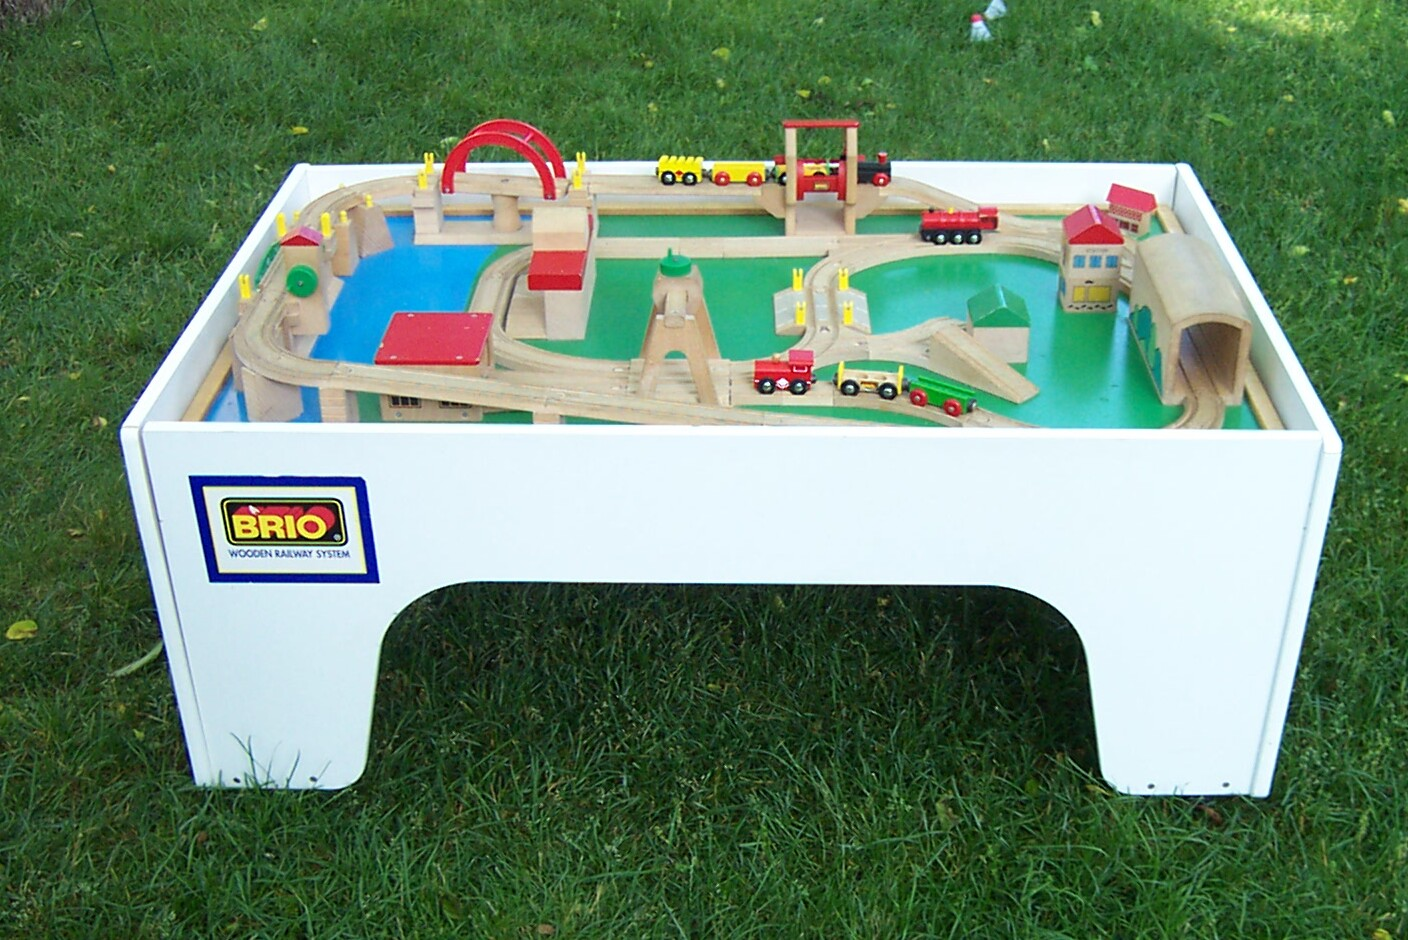 A consistent and well paying garage sale find for me has been Brio train tables. I come across them on average of one every six weeks or so. & Money in the Garage: All aboard for Brio train tables!